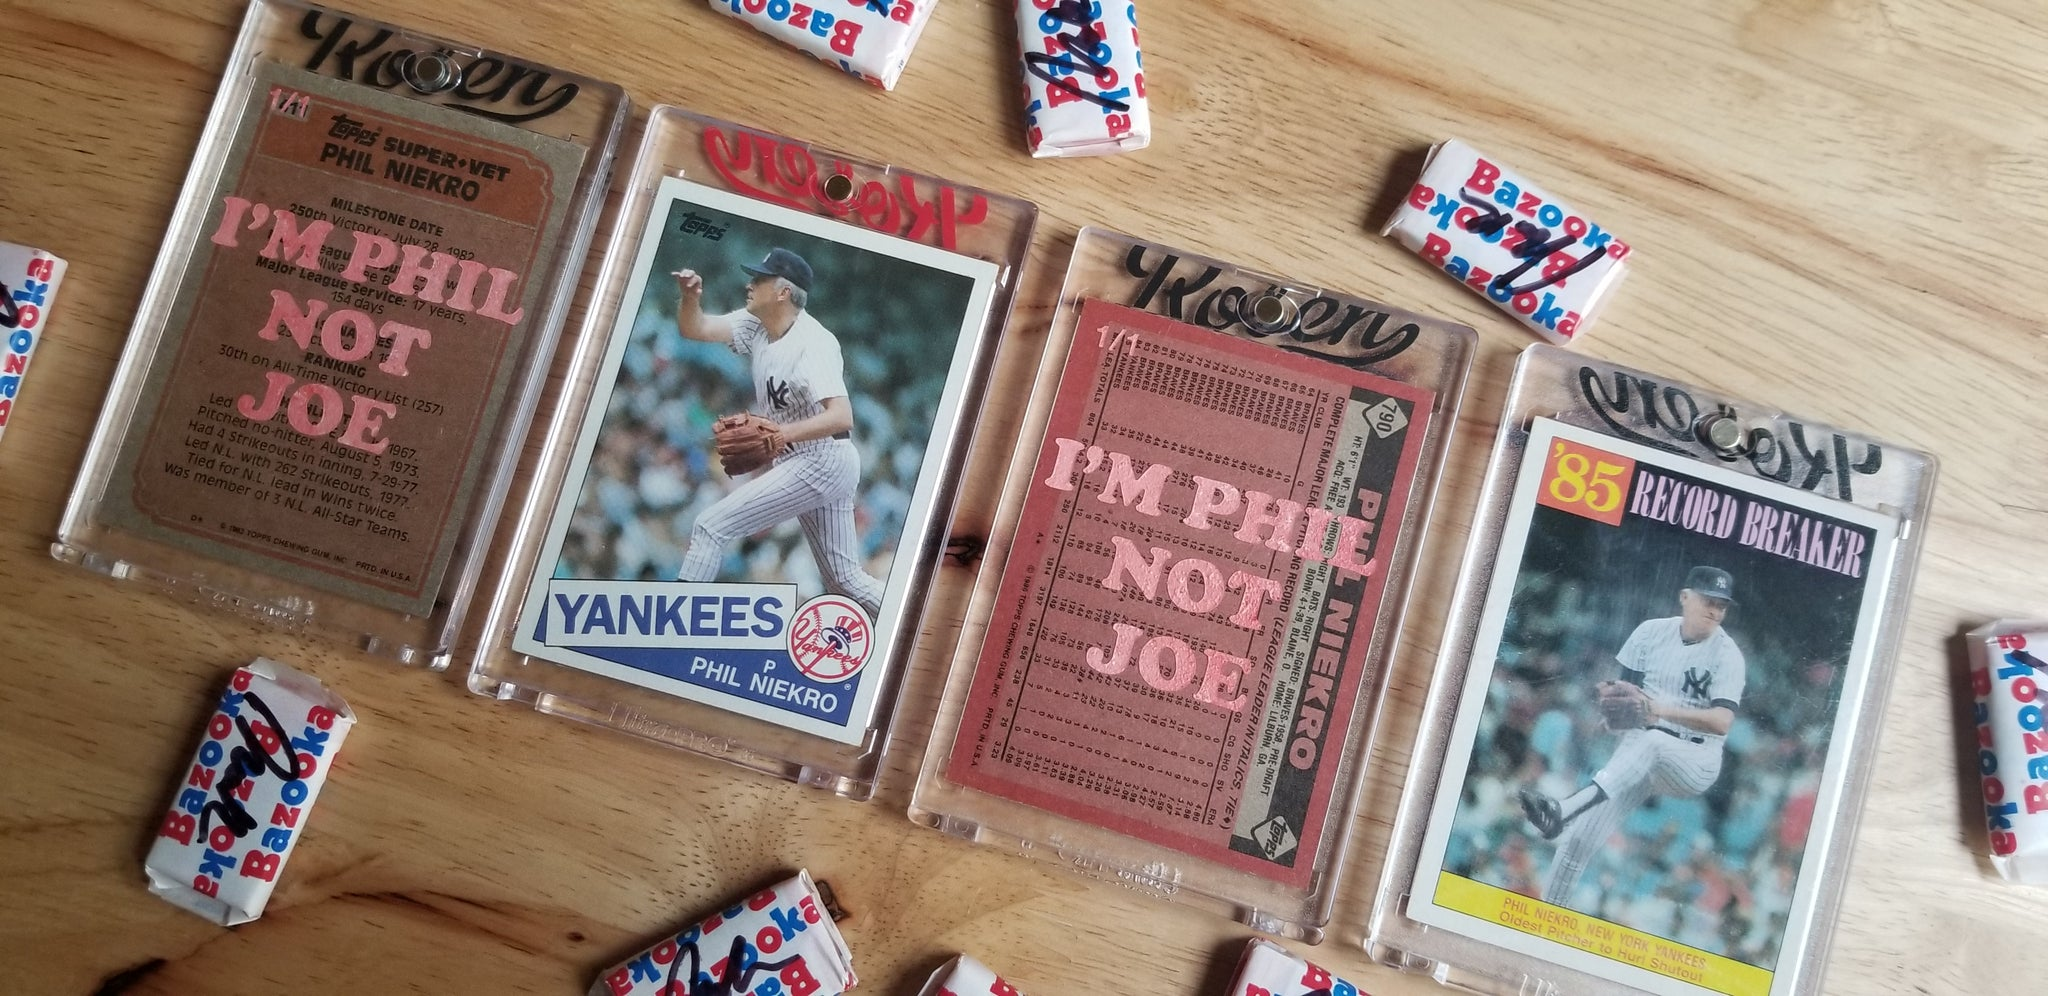 Baseball card art by Matthew Rosen - Phil Niekro